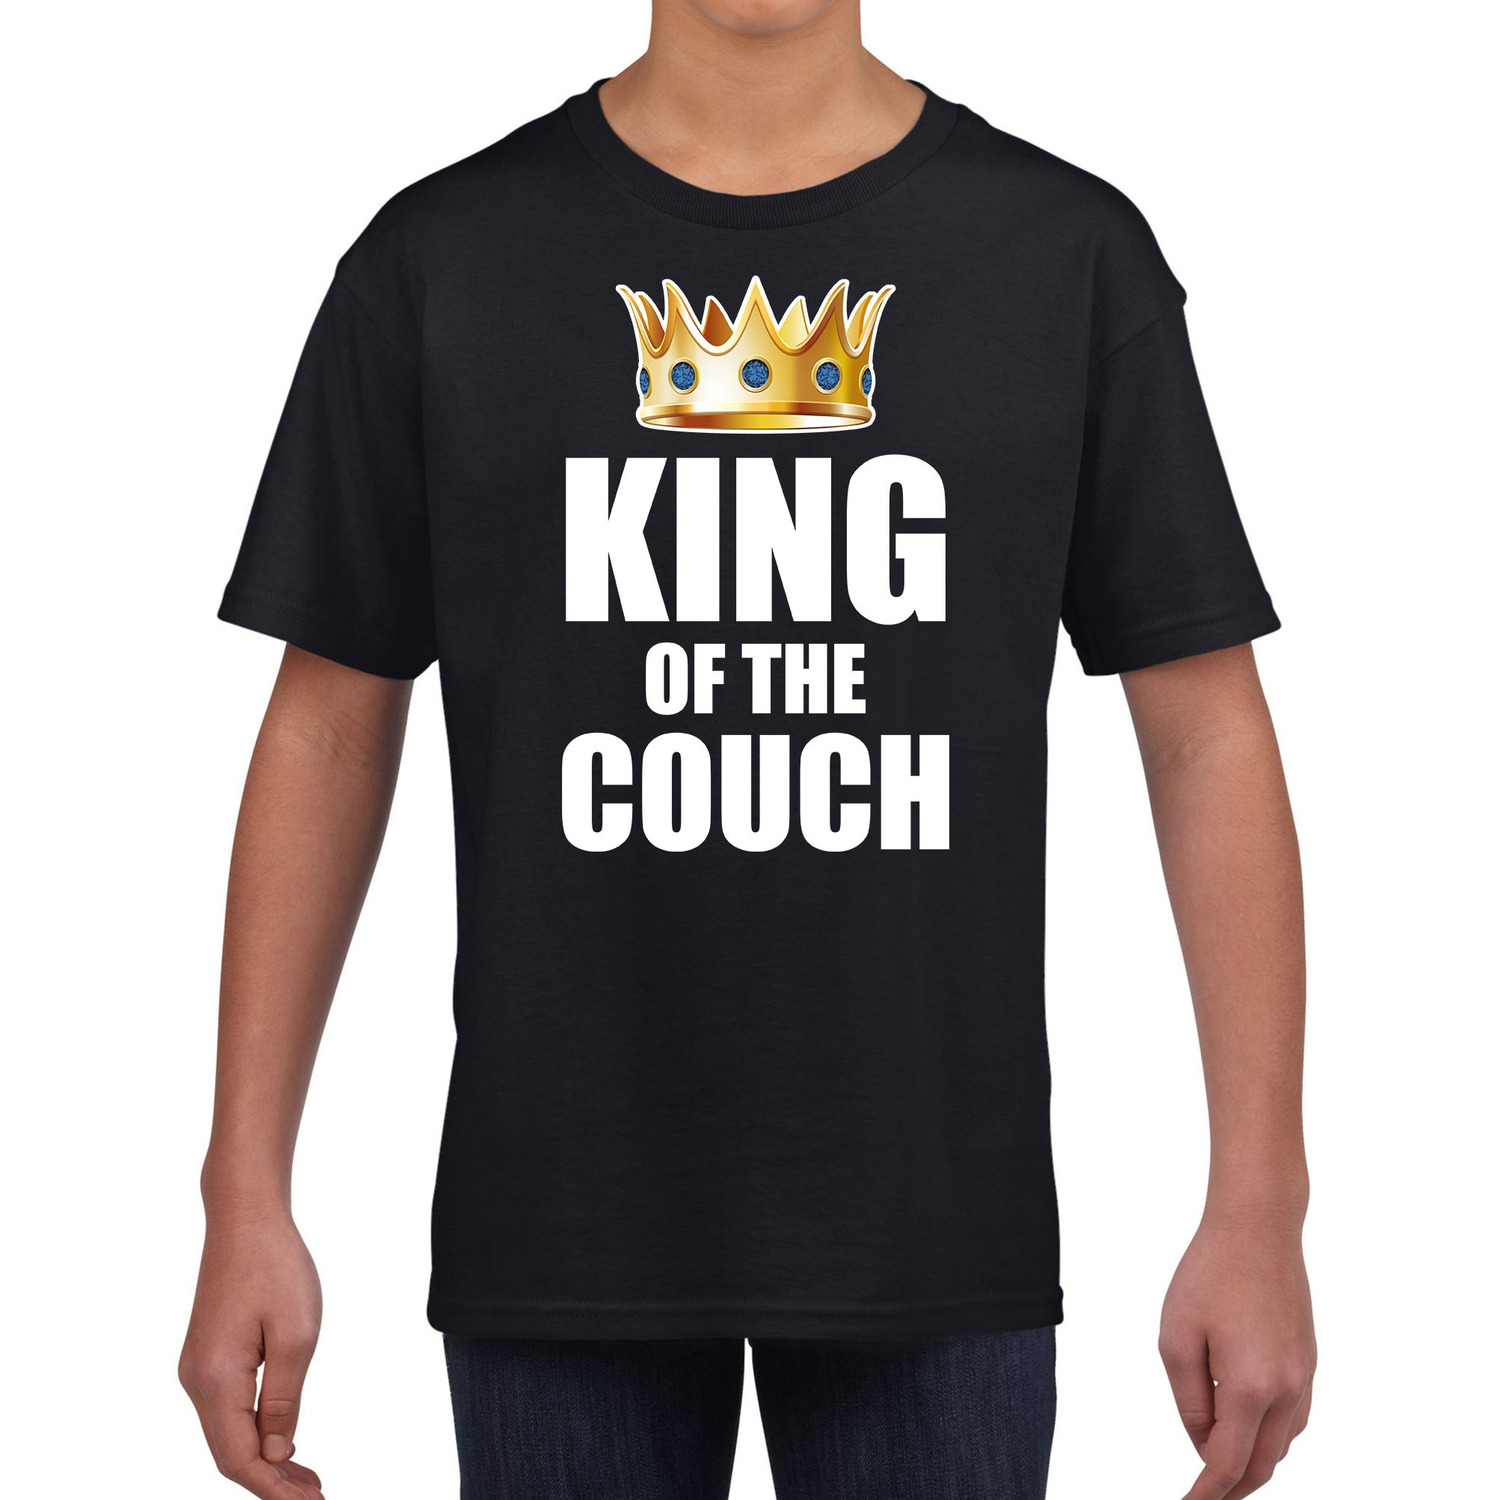 Koningsdag t-shirt king of the couch zwart voor kinderen